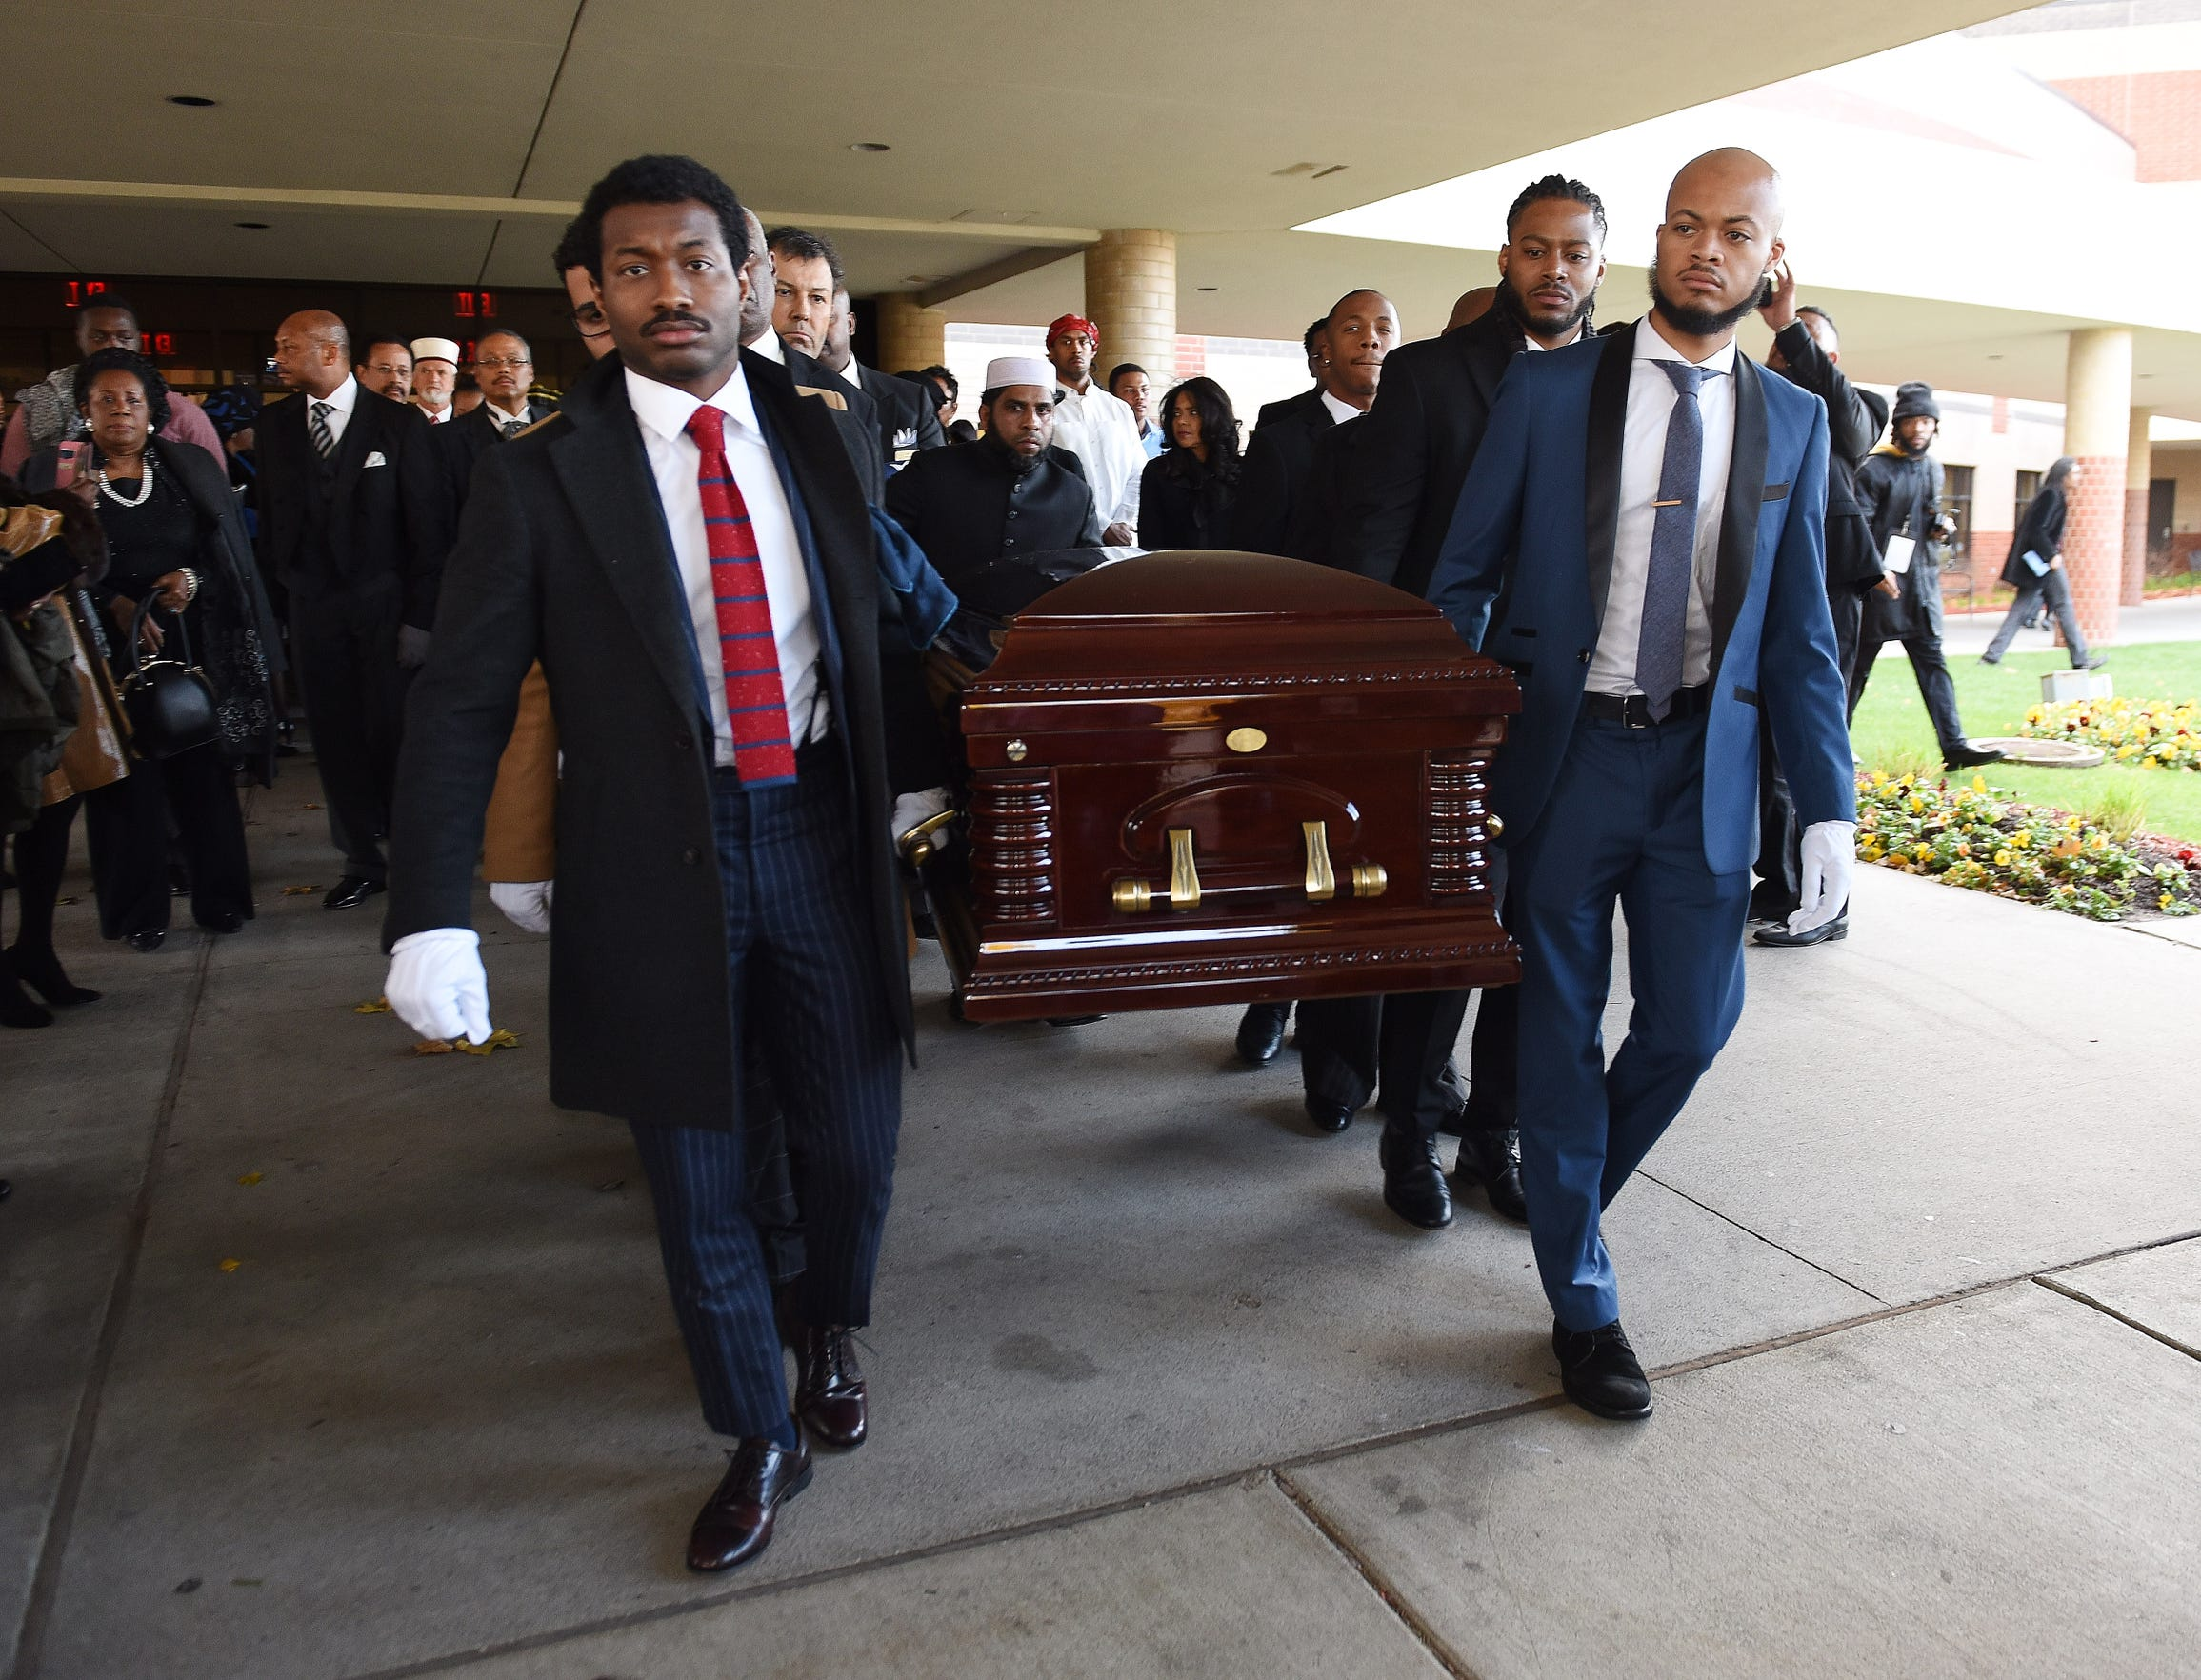 The casket of U.S. Rep. John Conyers Jr. is carried by his sons John Conyers III, left, and Carl Conyers after his funeral at Greater Grace Temple Church., November 4, 2019. Conyers, the longest-serving African-American member of Congress and a civil rights leader died Oct. 27 at age 90.